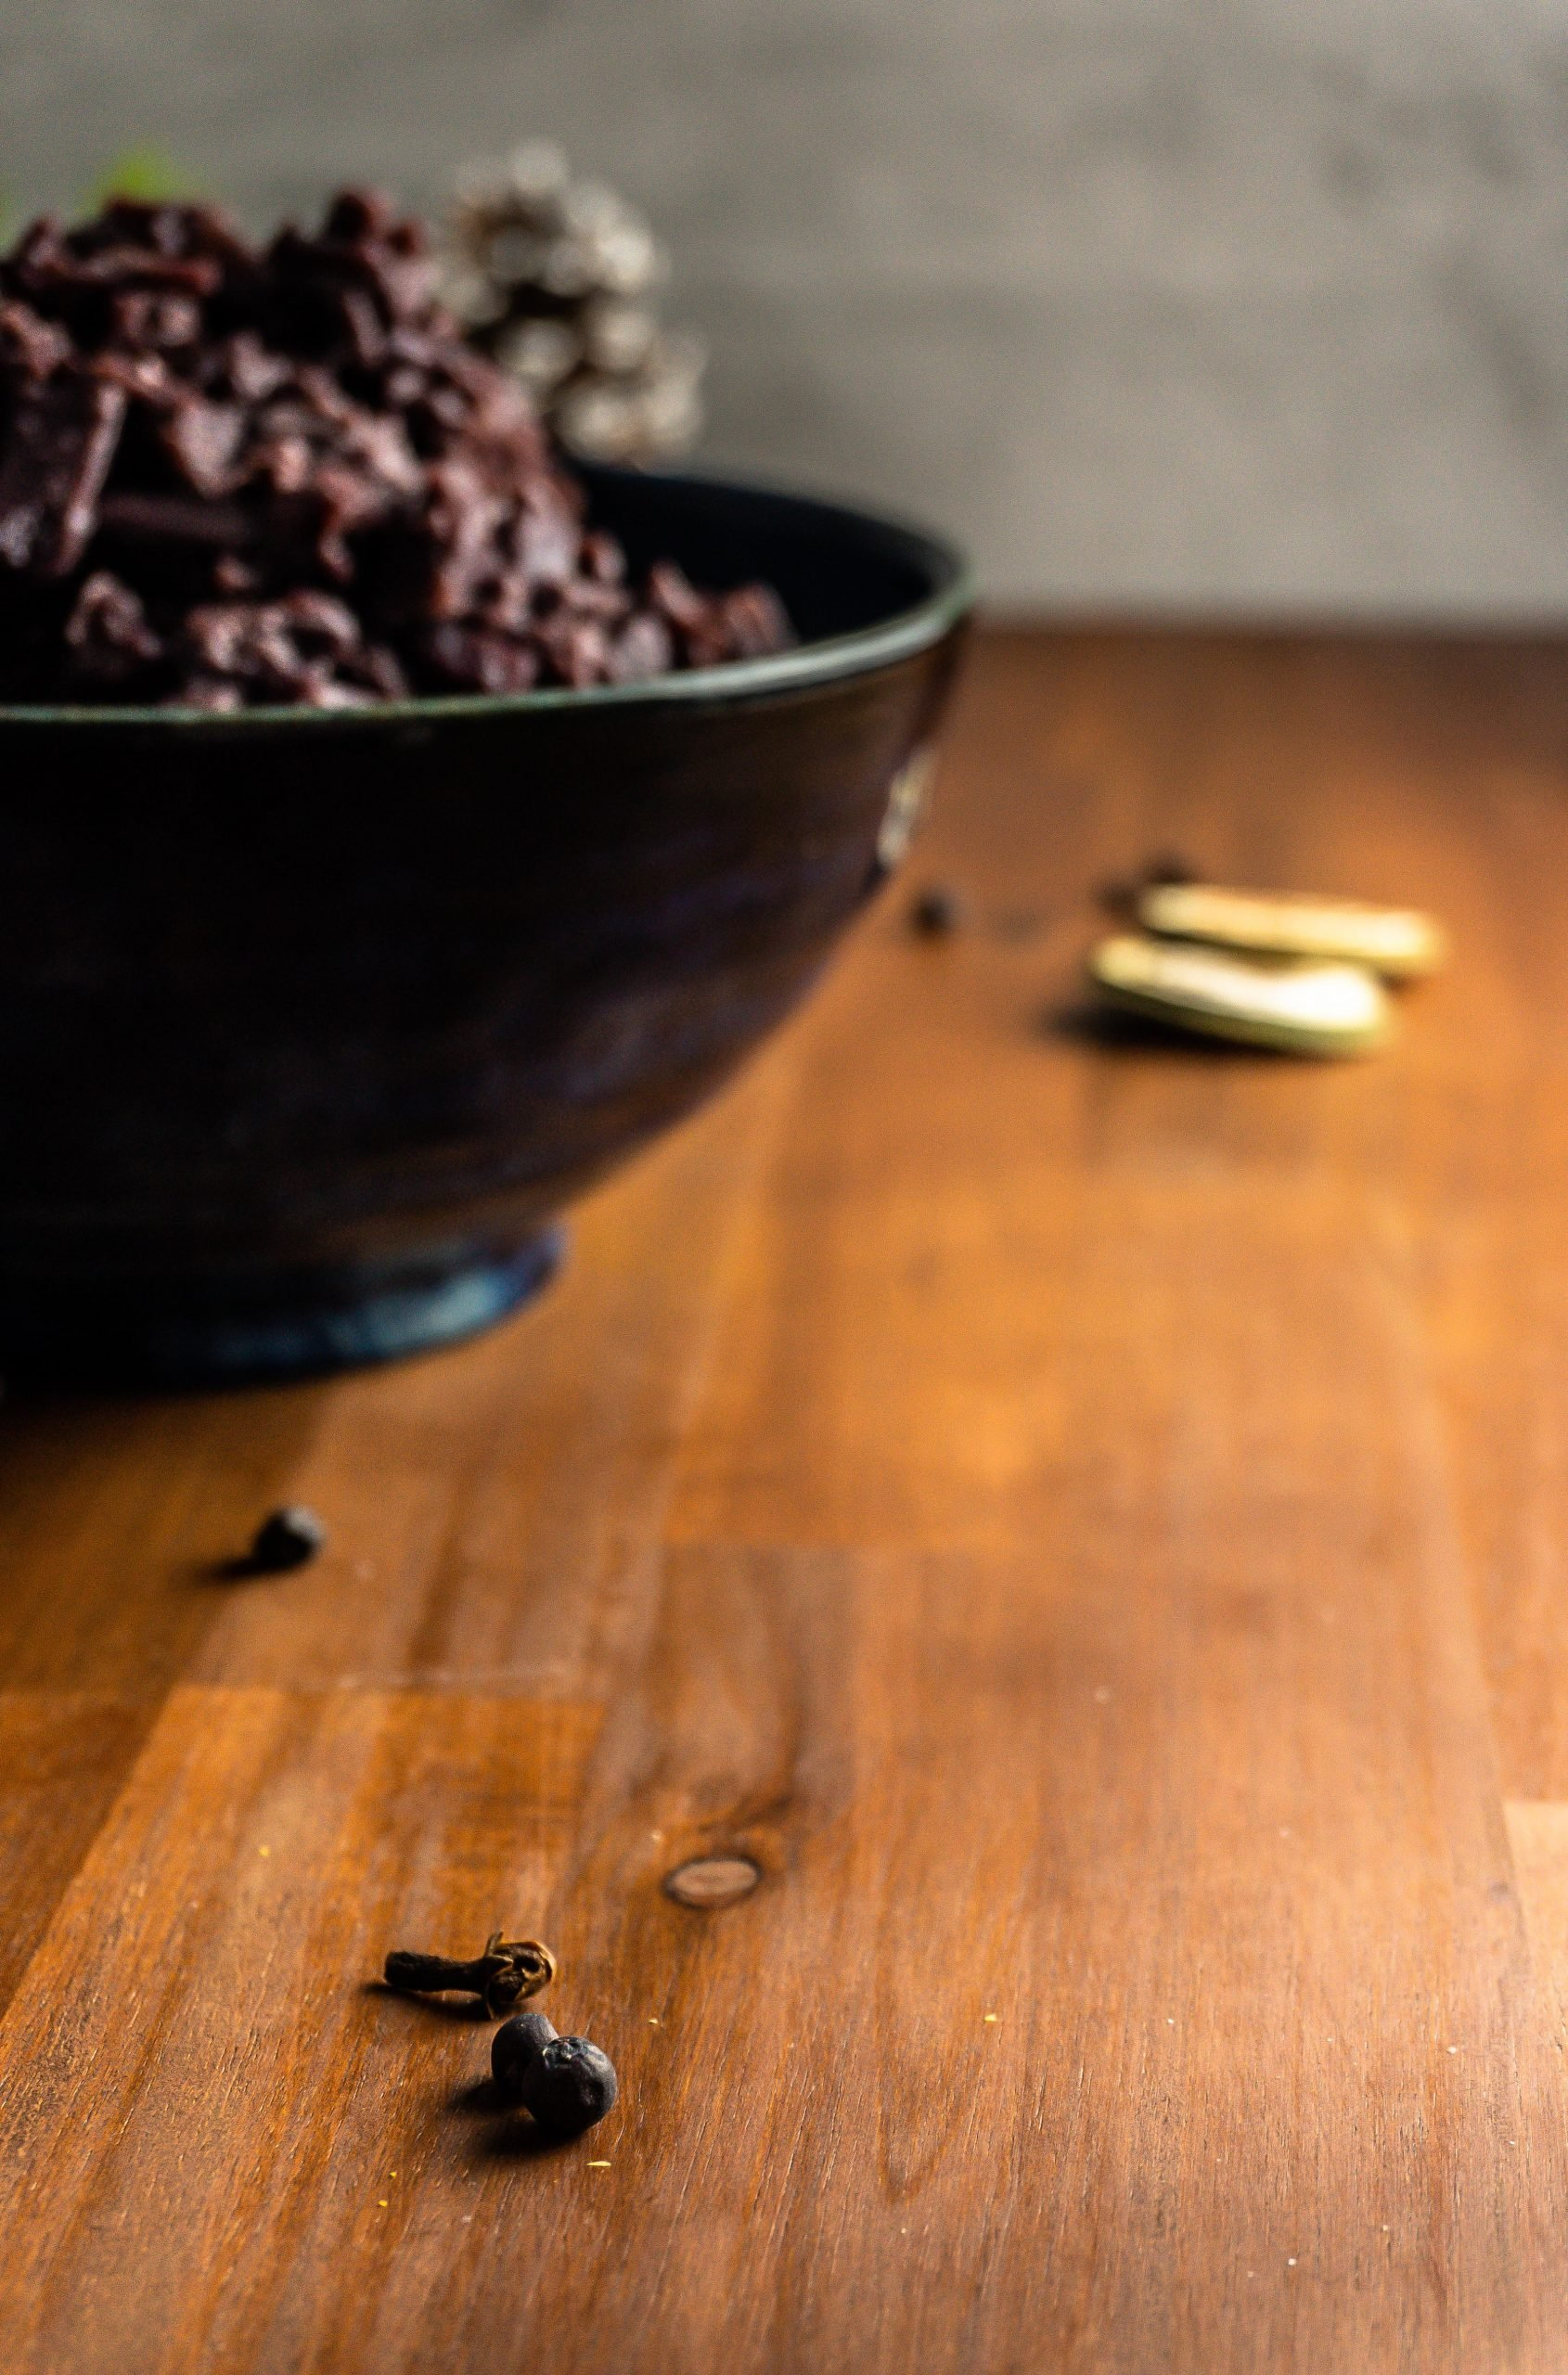 Clove and juniper berries on a wooden underground with German Red Cabbage (Rotkohl) visible in the background